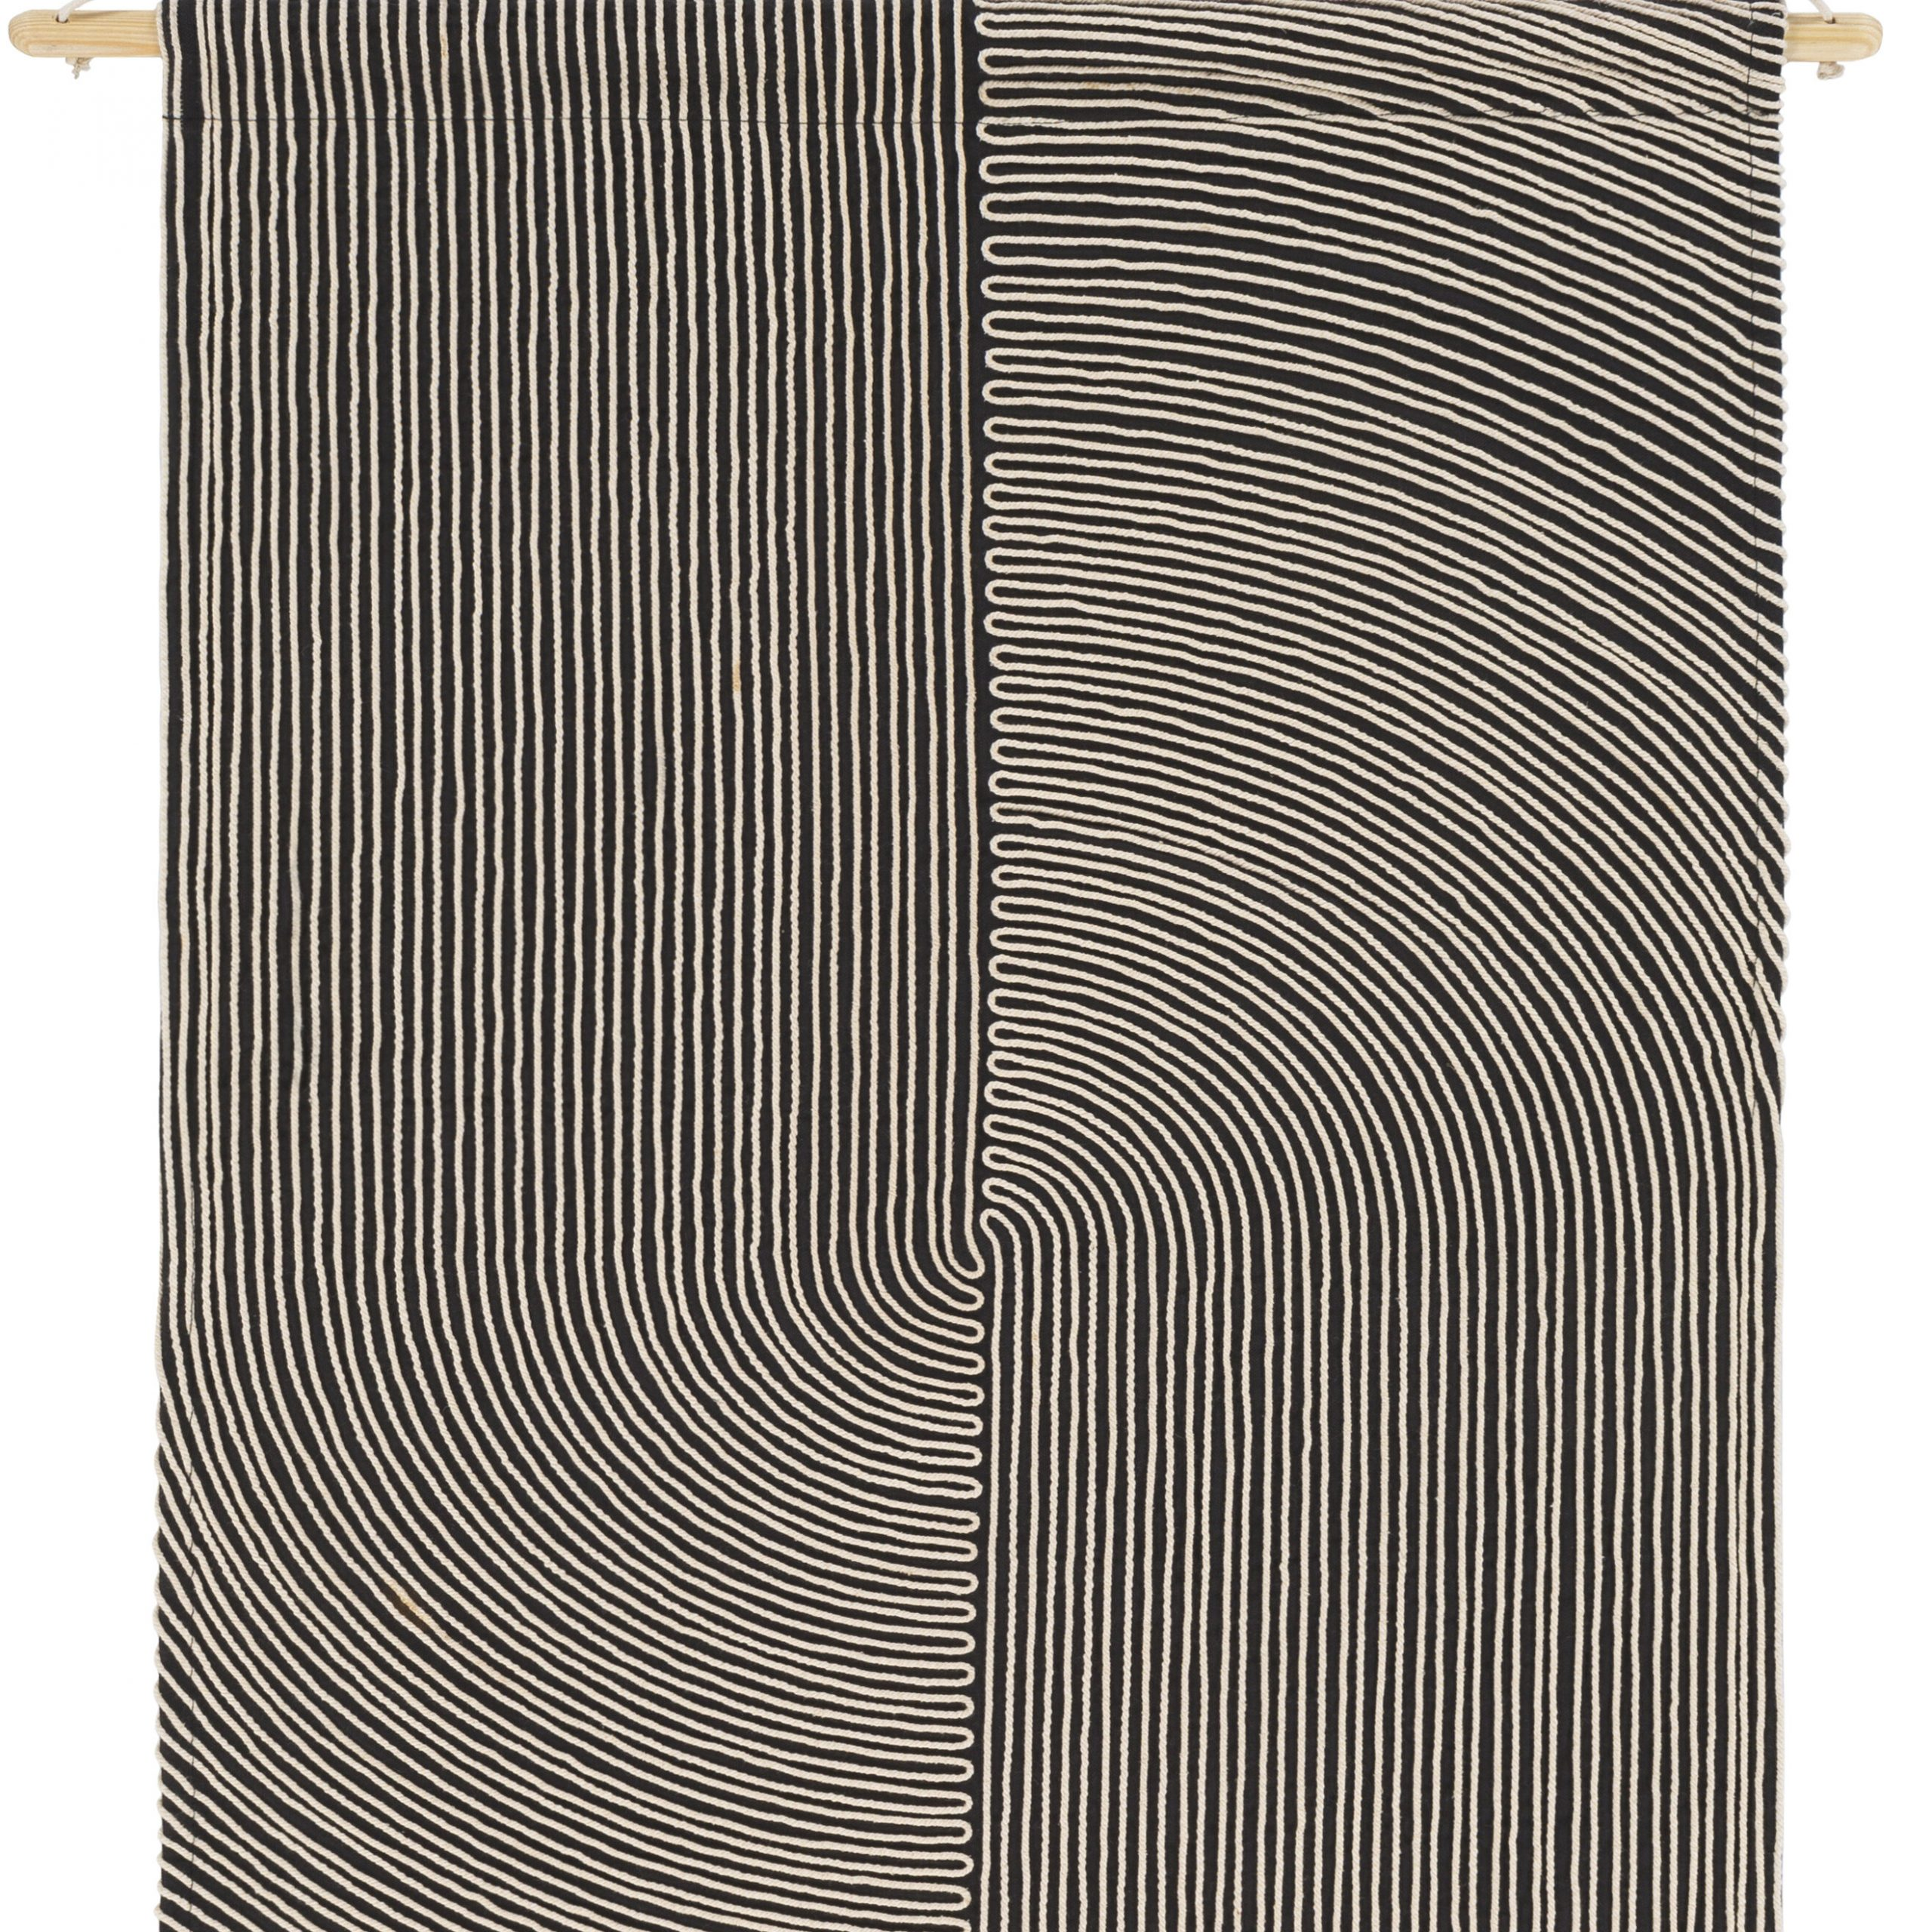 Modern Gray Wall Hangings | Allmodern For Most Recently Released Blended Fabric Teresina Wool And Viscose Wall Hangings With Hanging Accessories Included (View 11 of 20)